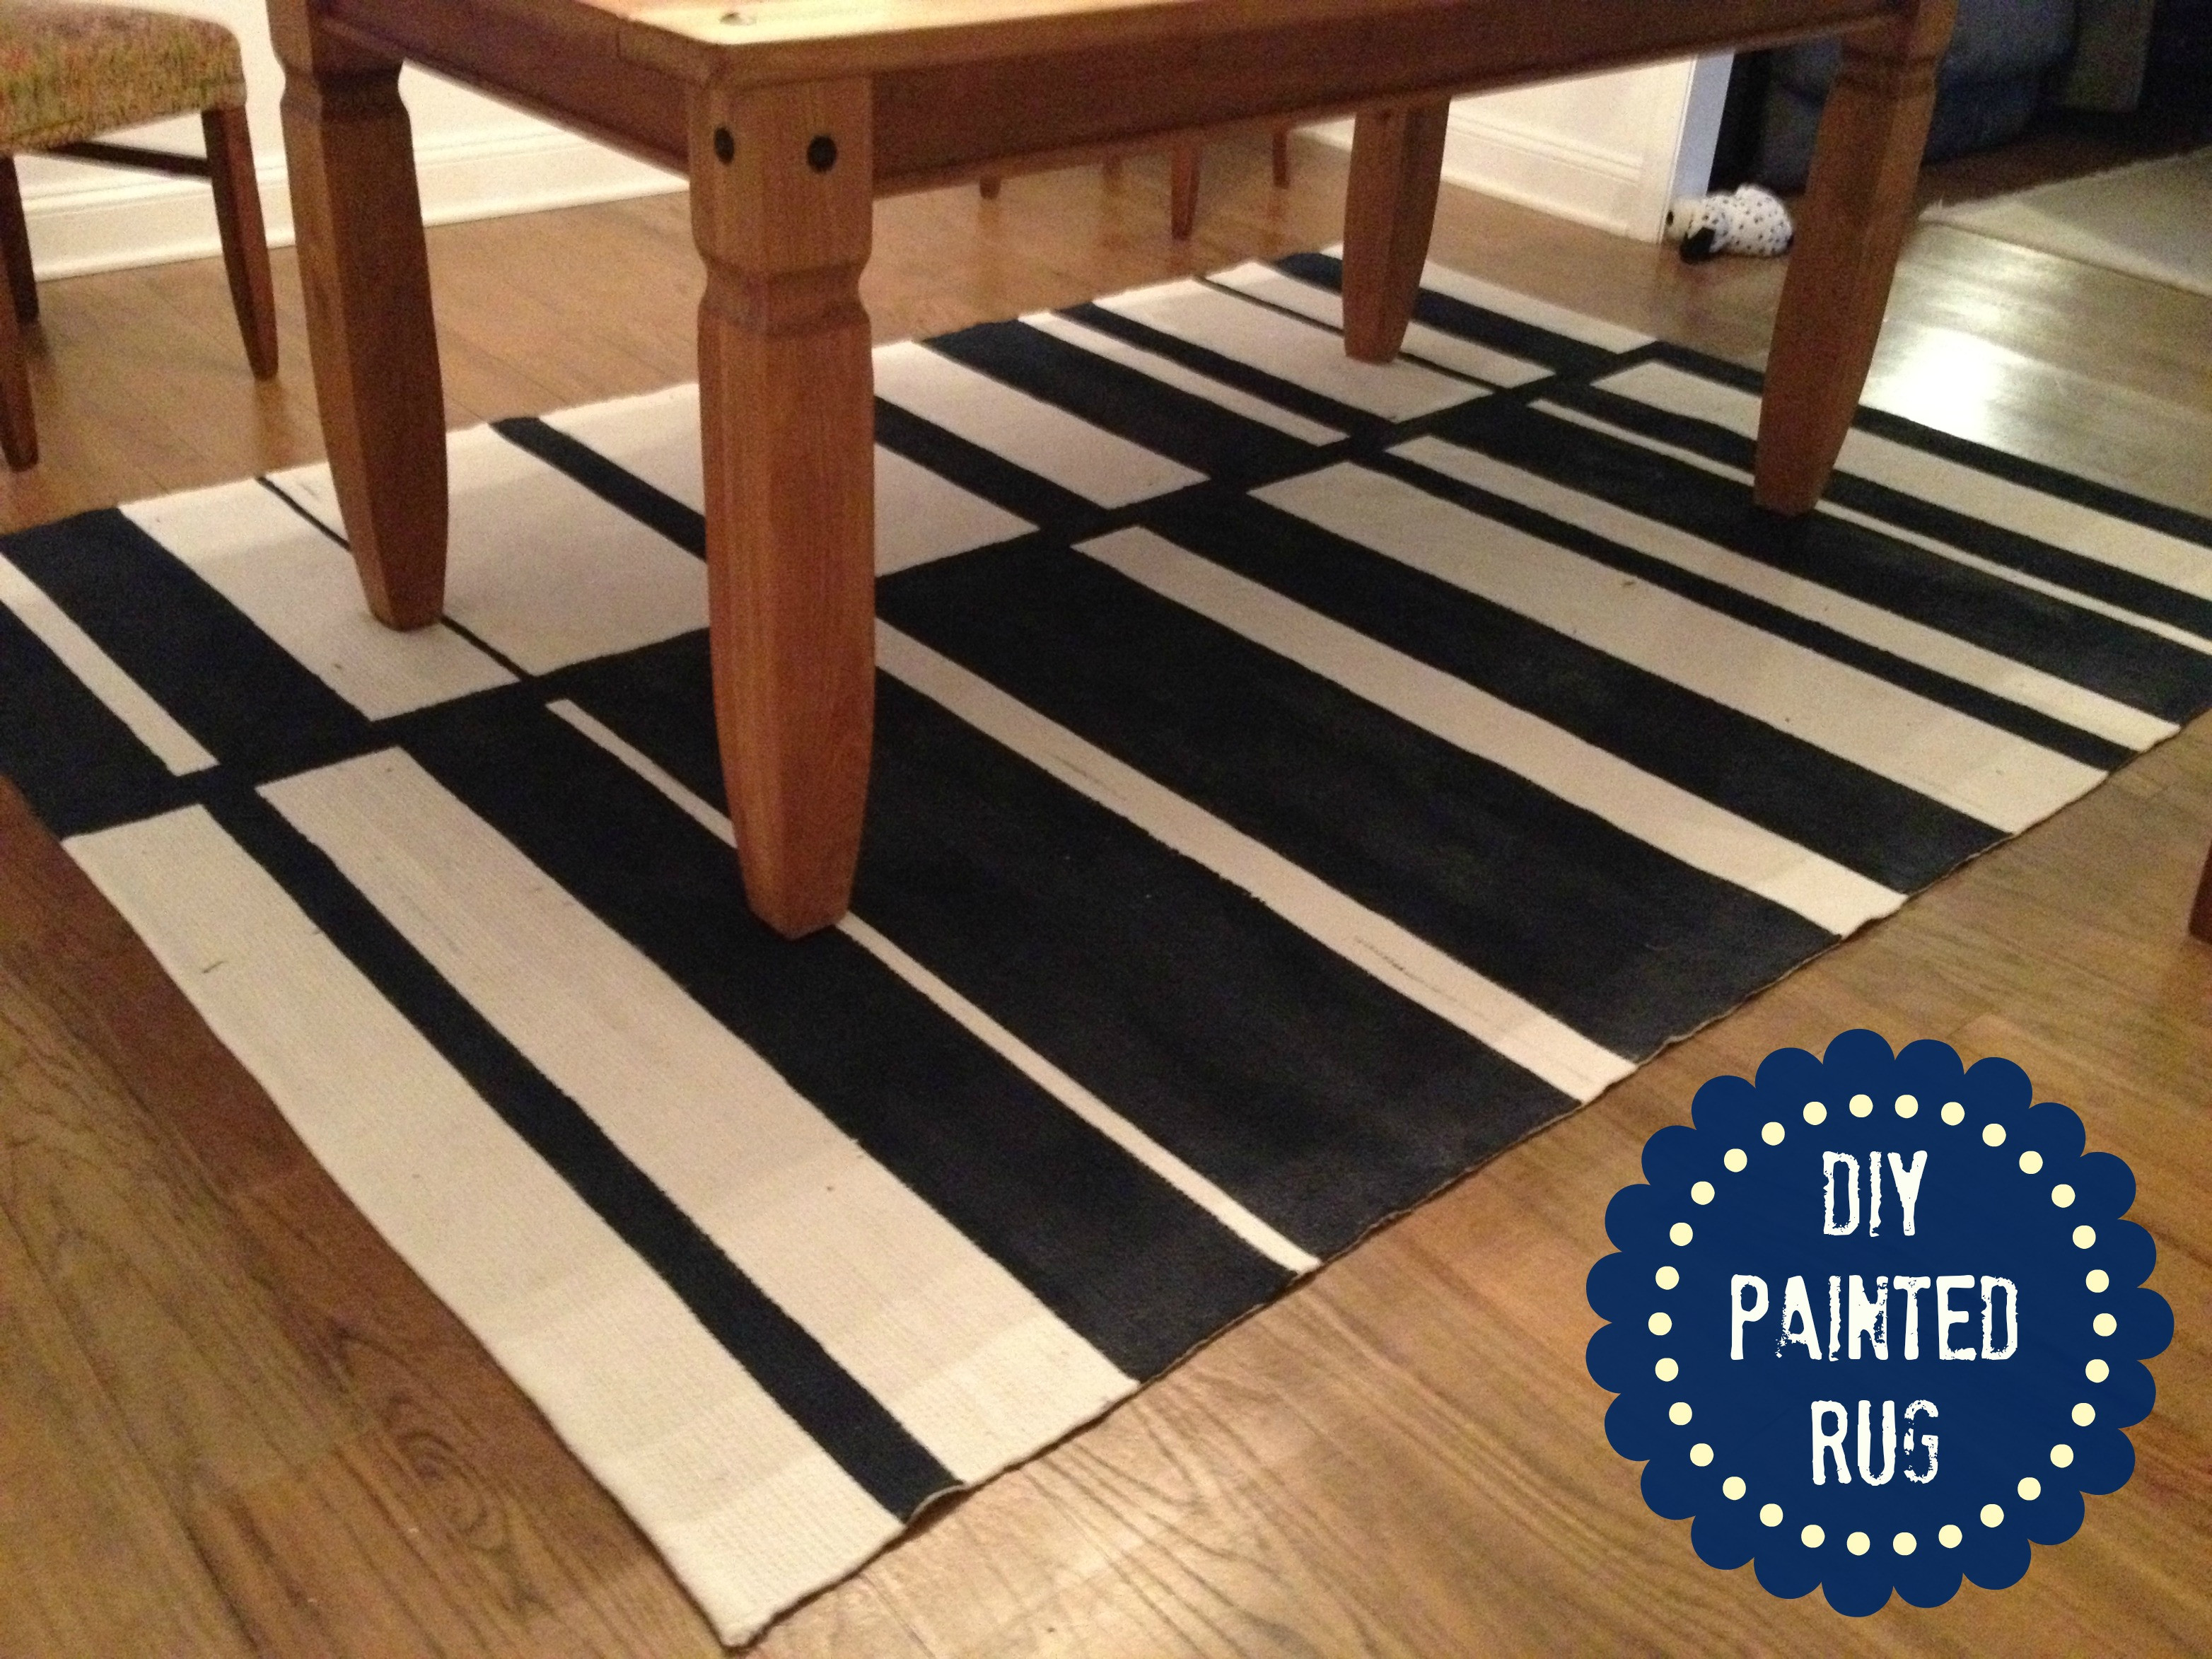 Best ideas about DIY Painted Rug . Save or Pin How to Paint a Rug Tutorial Now.